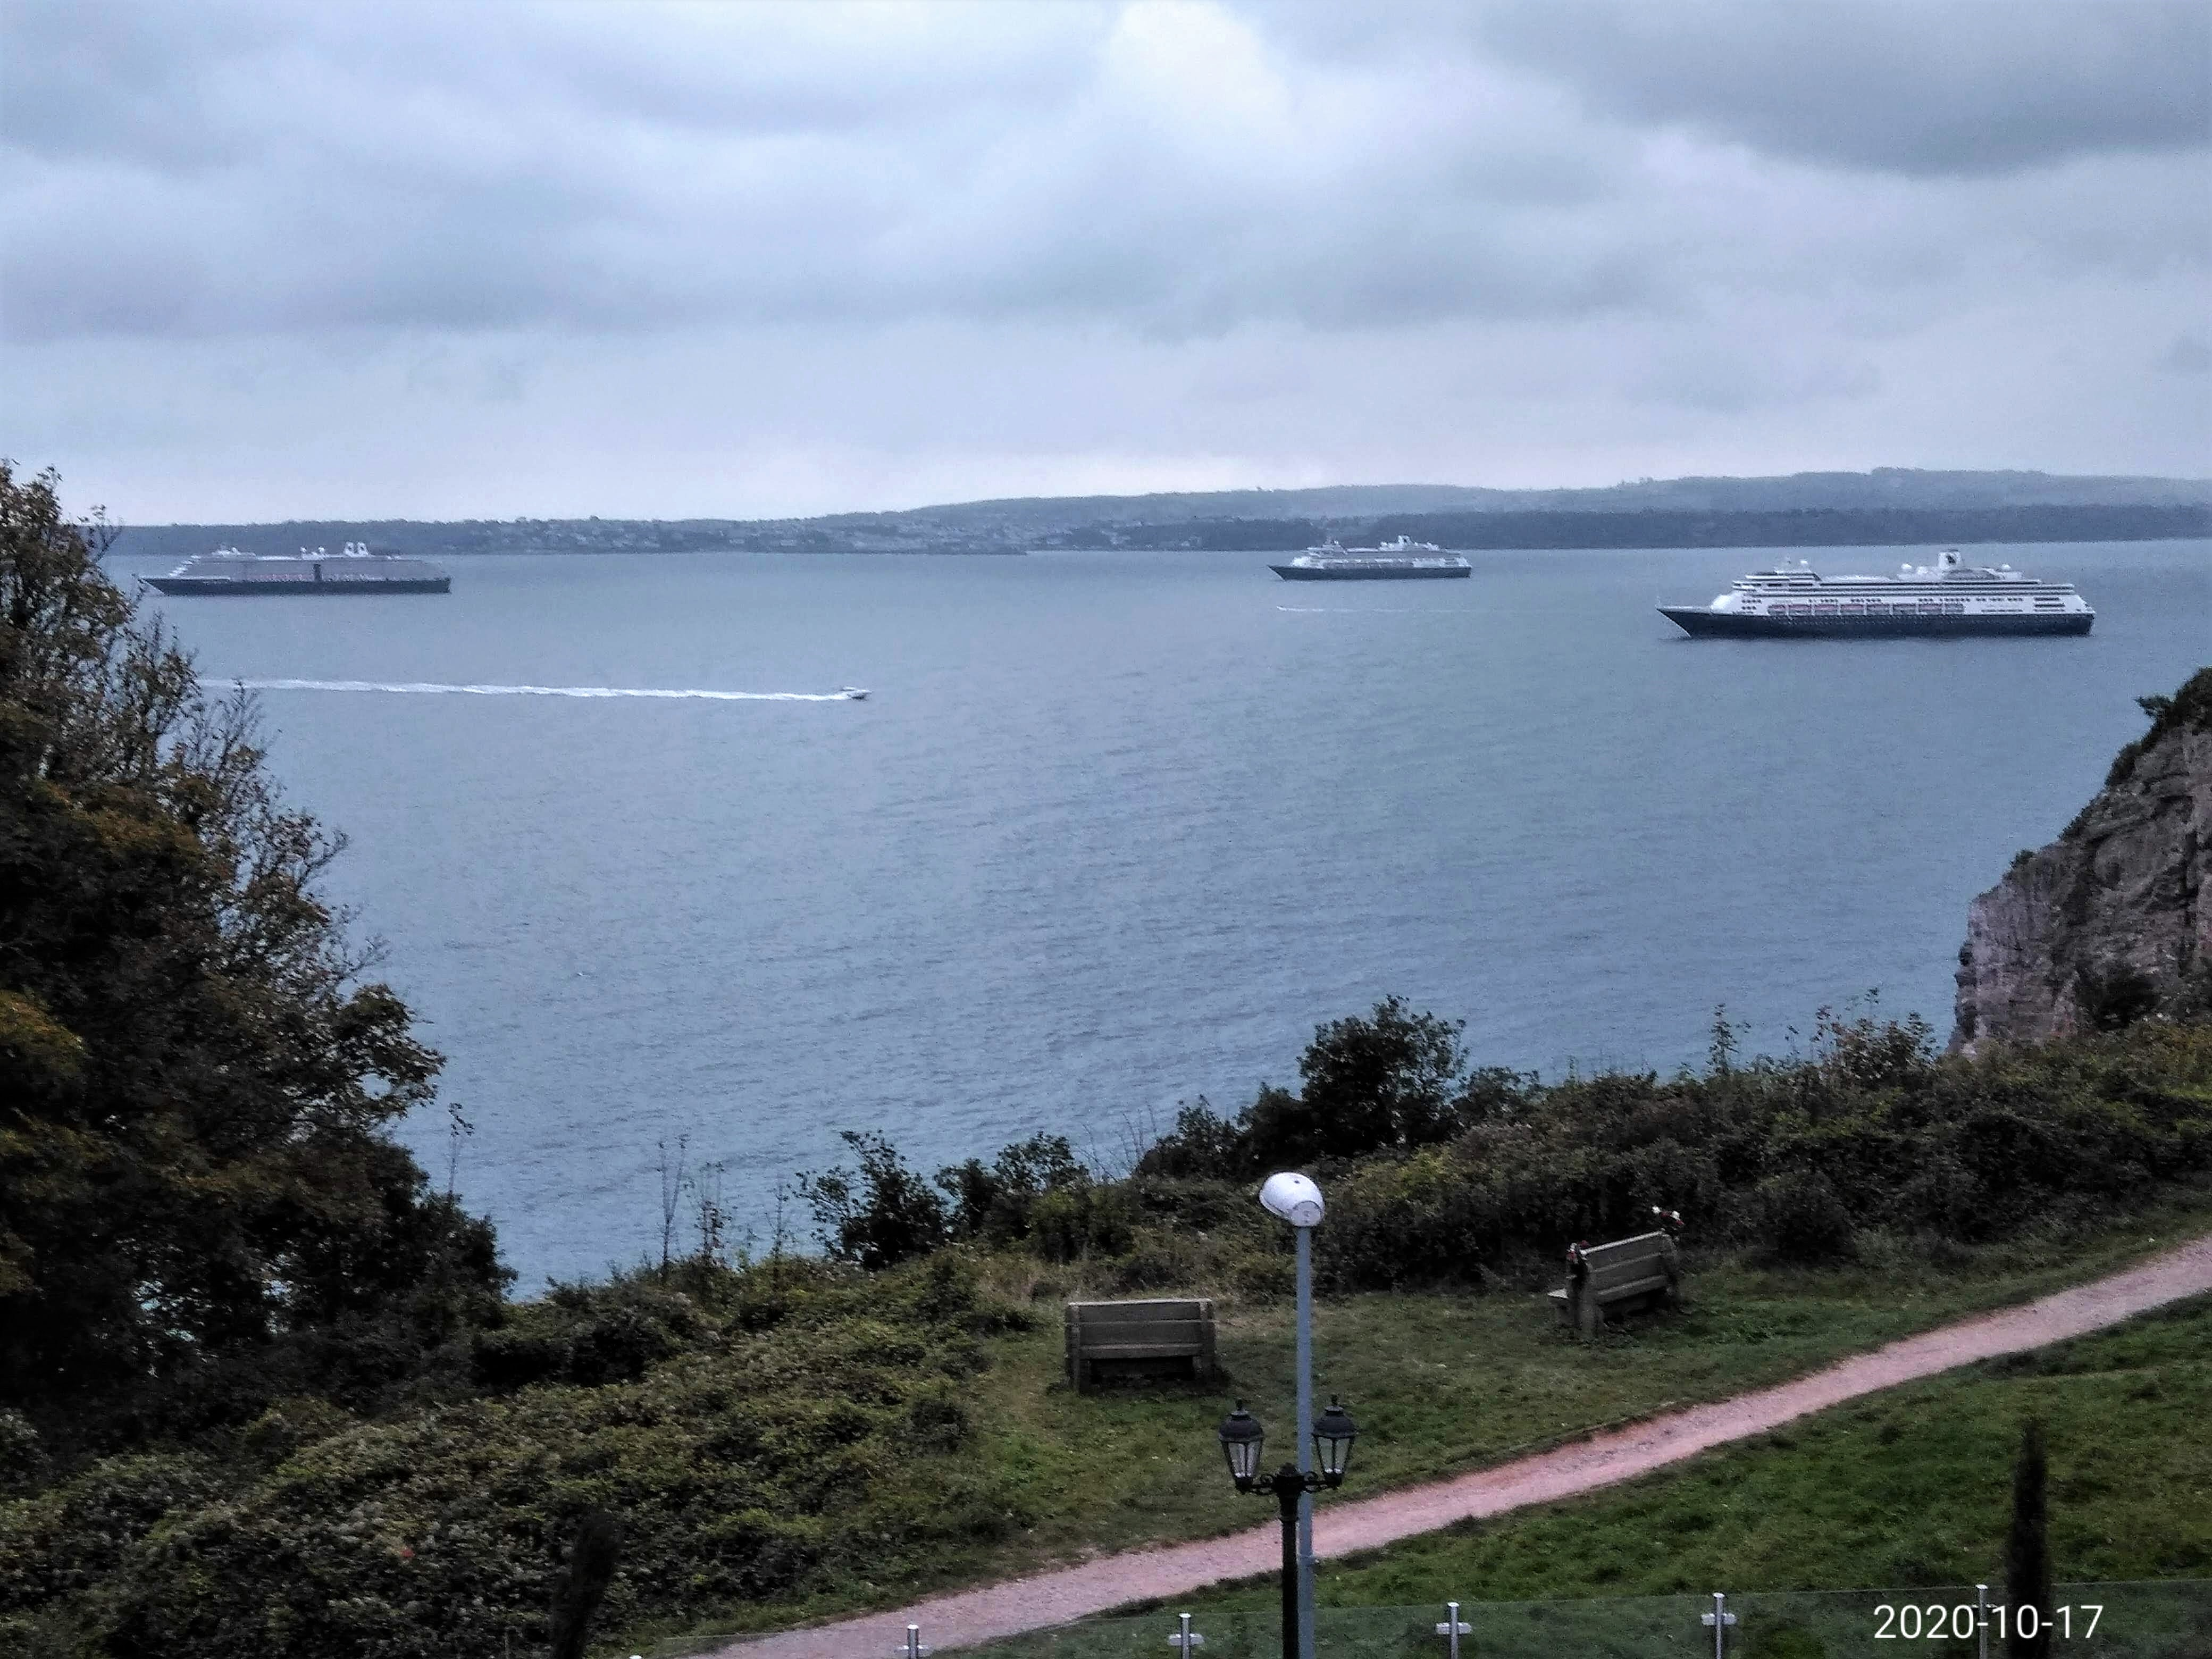 Cruise ships resting in Torbay, October 2020